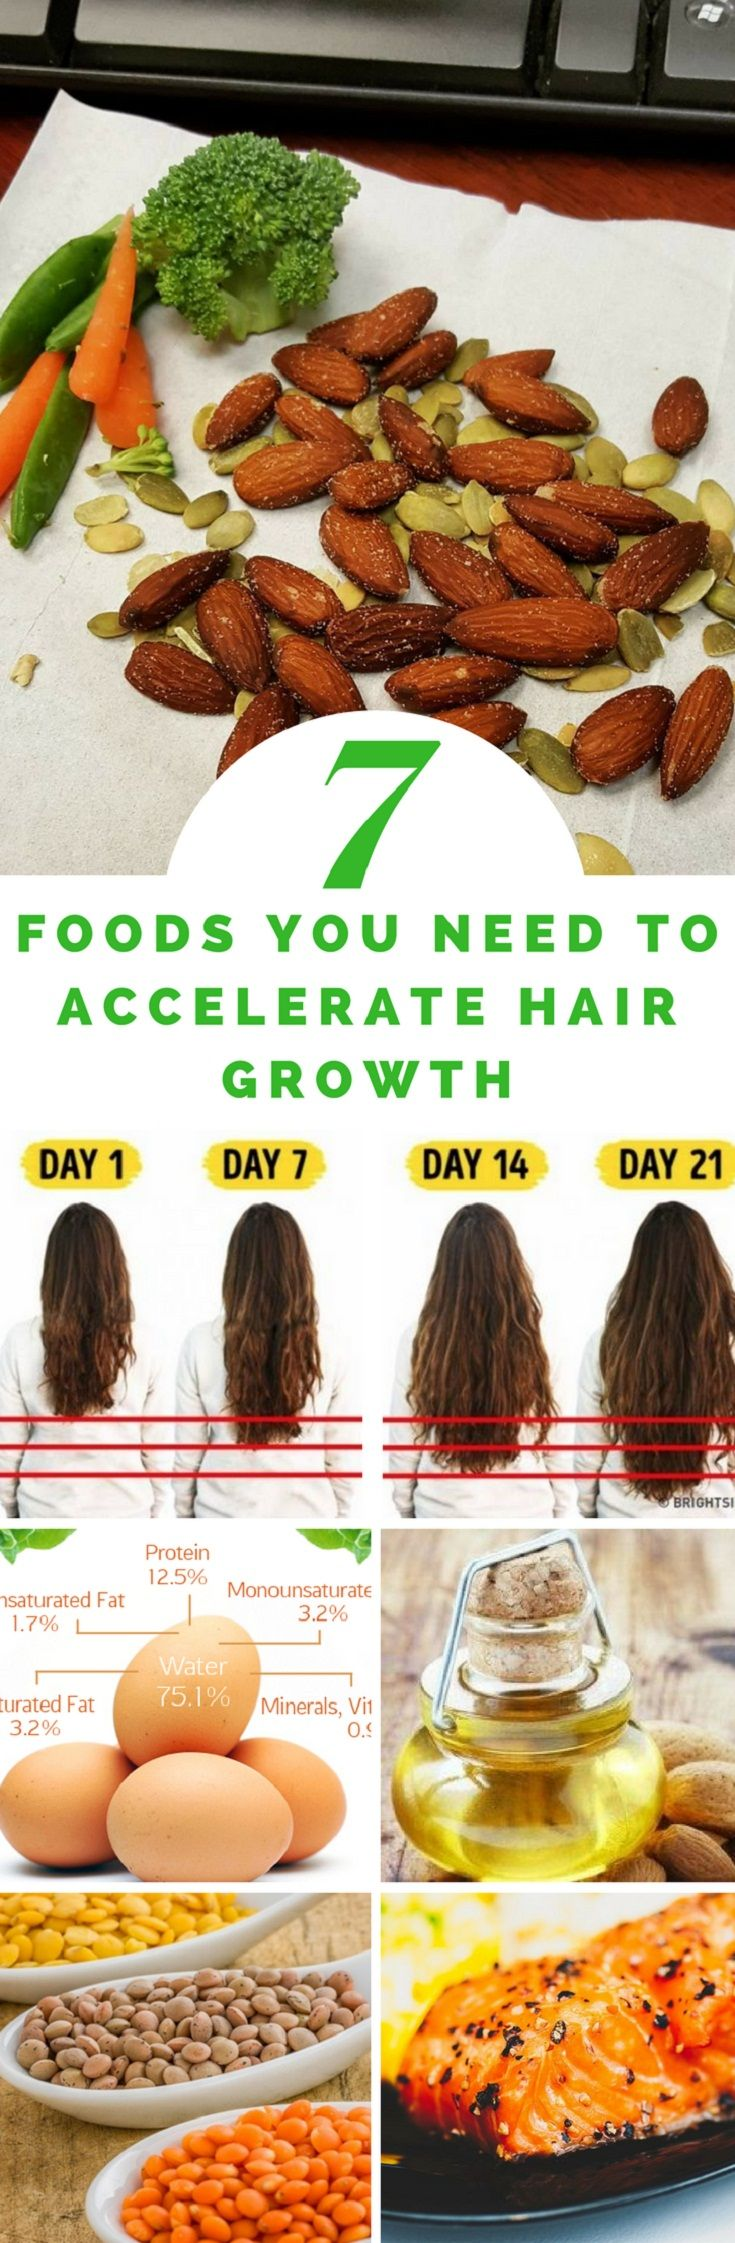 7 Foods You Need to Accelerate Hair Growth